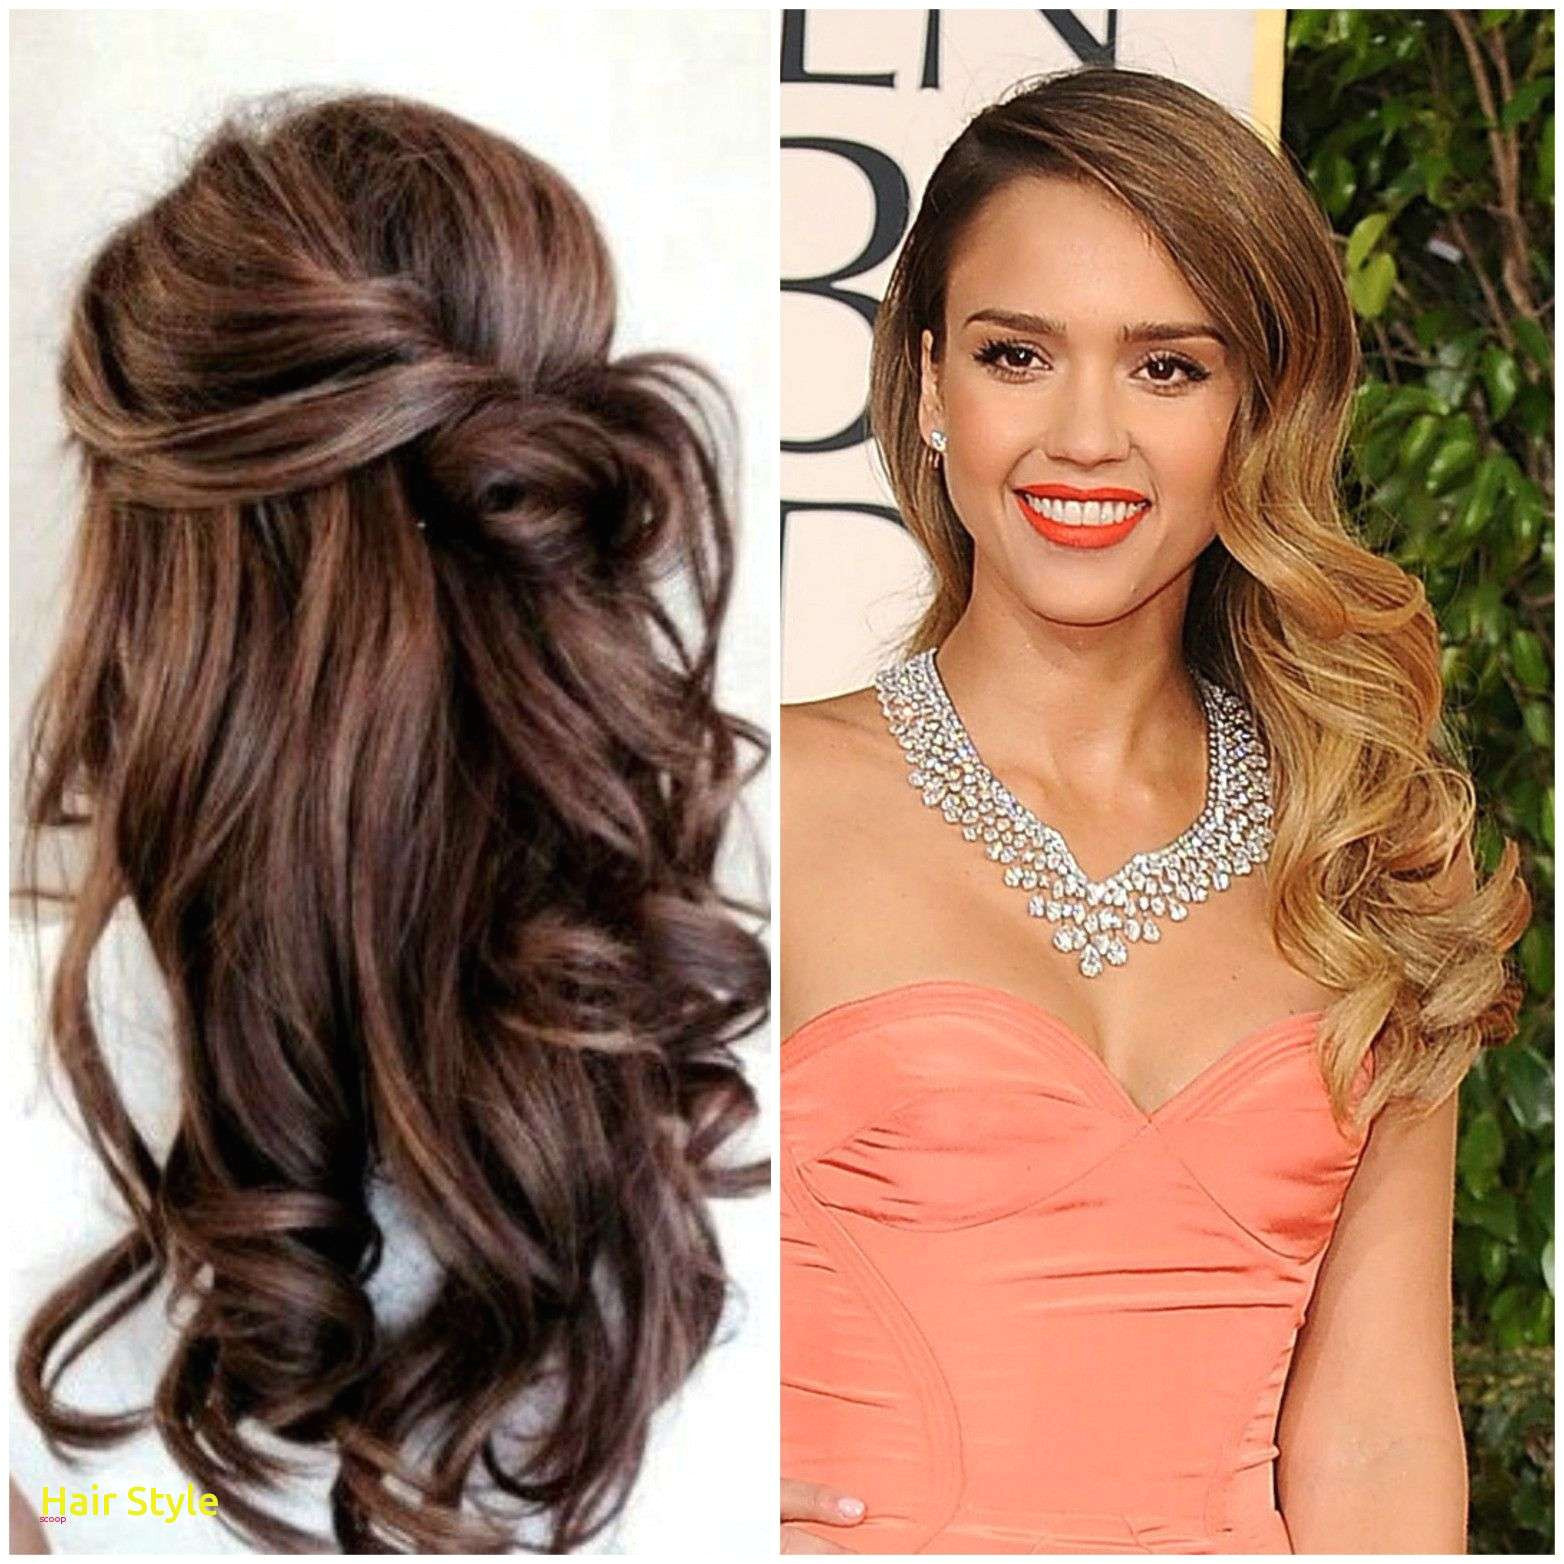 Curls Hairstyles for Party Fresh Hairstyle for Short Curly Hair for Party – Uternity